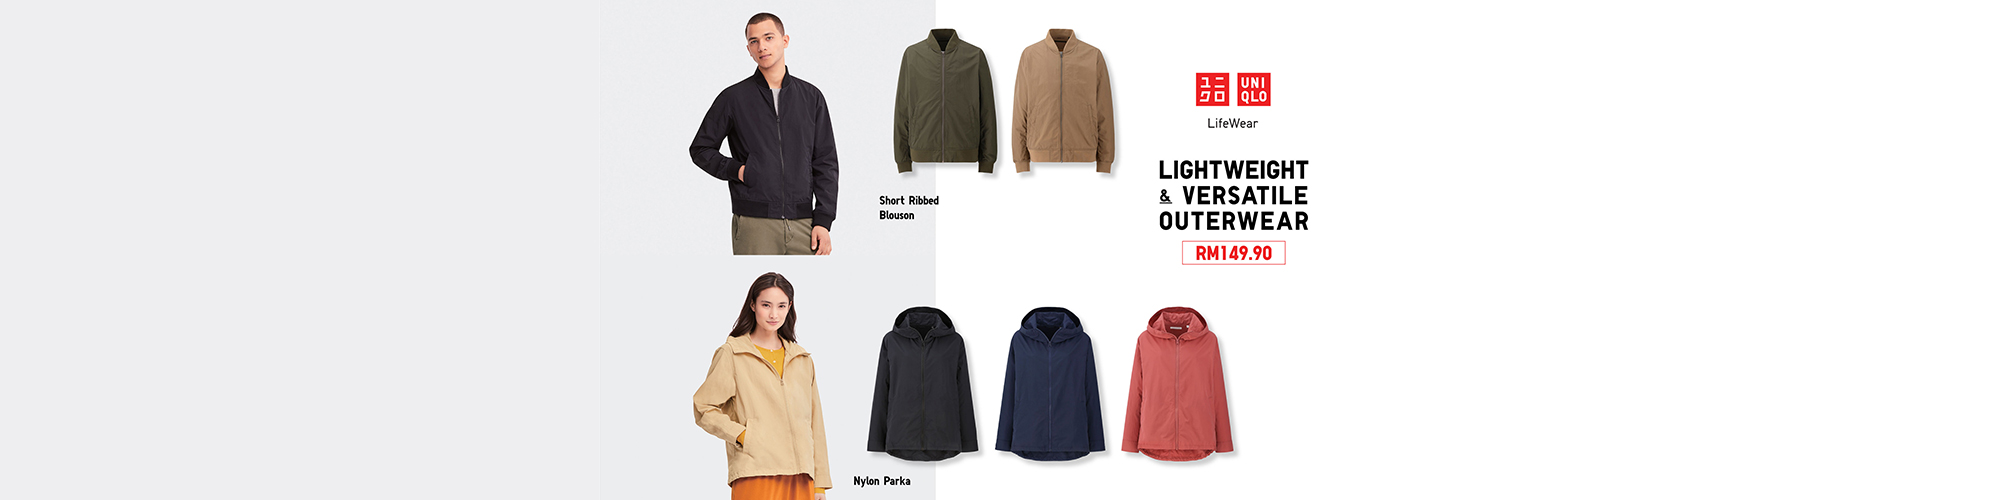 km_website_slider_uniqlo_080818